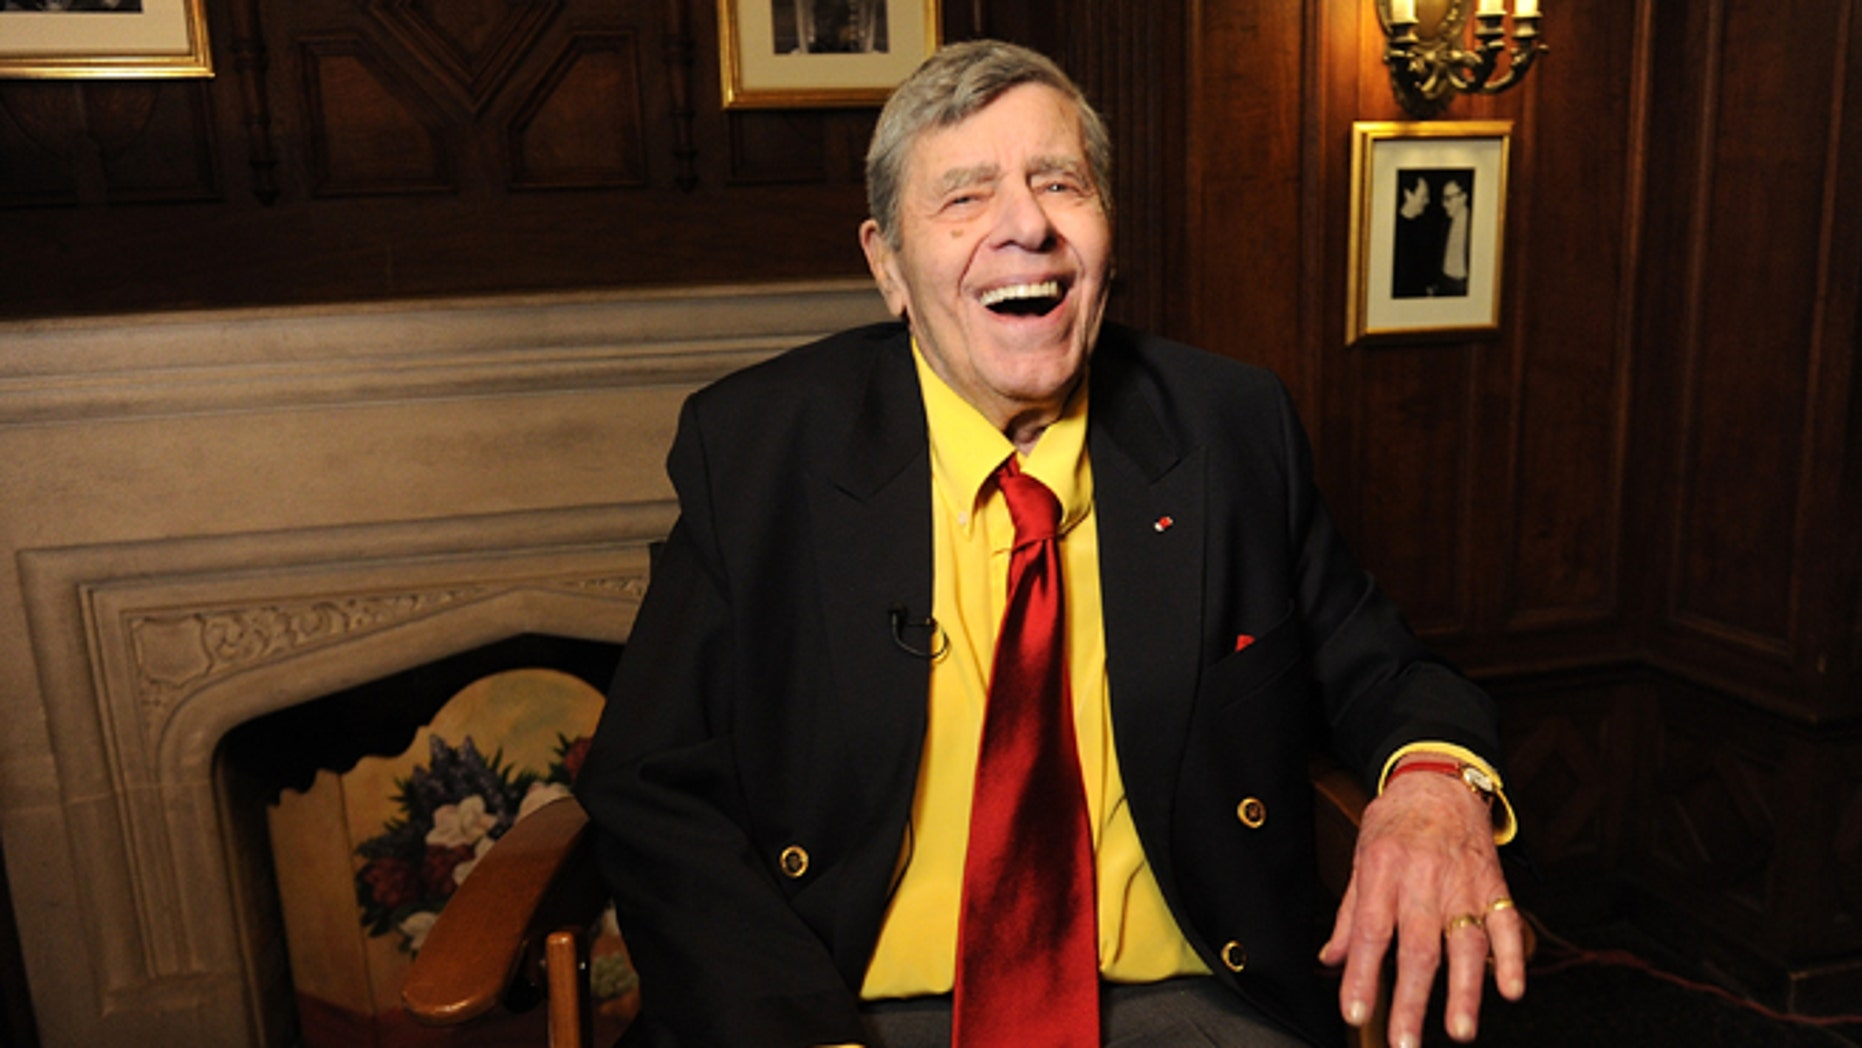 April 8, 2016. Entertainer Jerry Lewis poses for a portrait at the Friars Club before his 90th birthday celebration in New York.